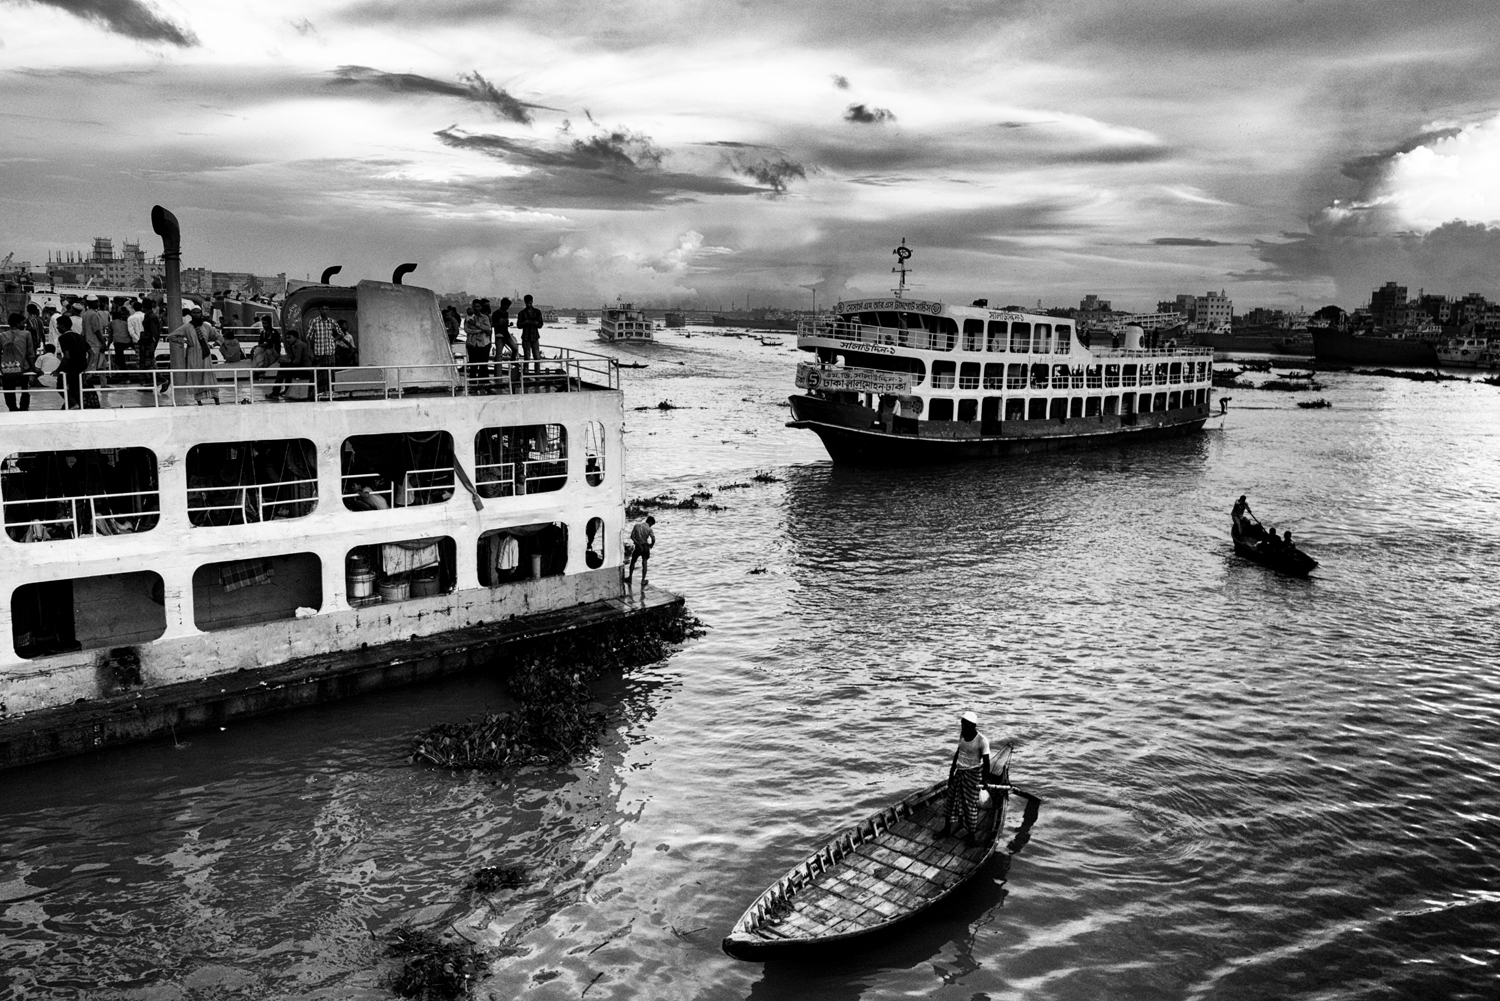 Every day tens of boats leave the Sadarghat Harbours to                               Chandpour and other destinations of the country, Old Dhaka, Bangladesh.